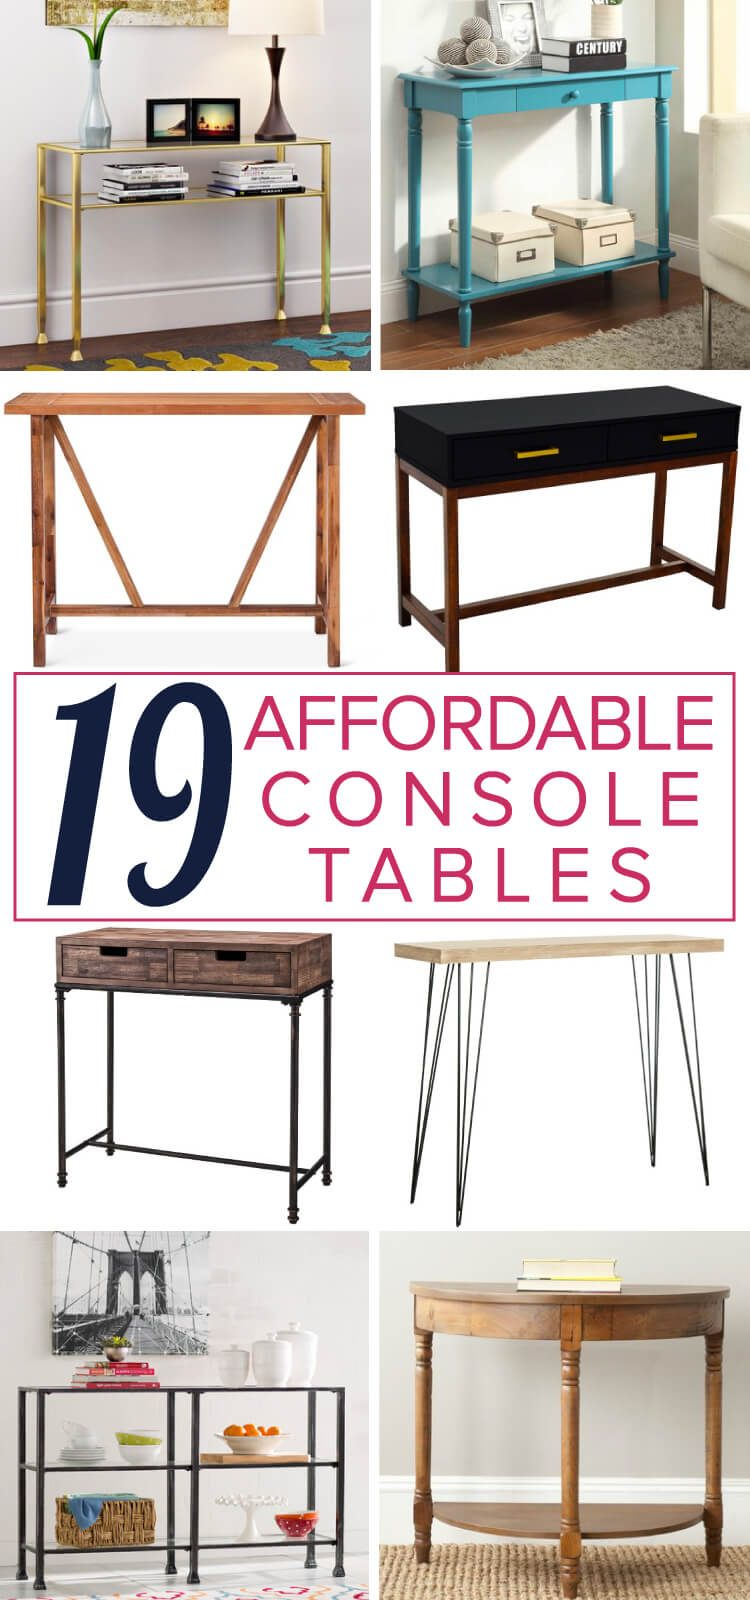 Console tables are so versatile and can be used so many different ways in your home. This list of affordable console, sofa and entry tables is full of so many great and budget-friendly table options.